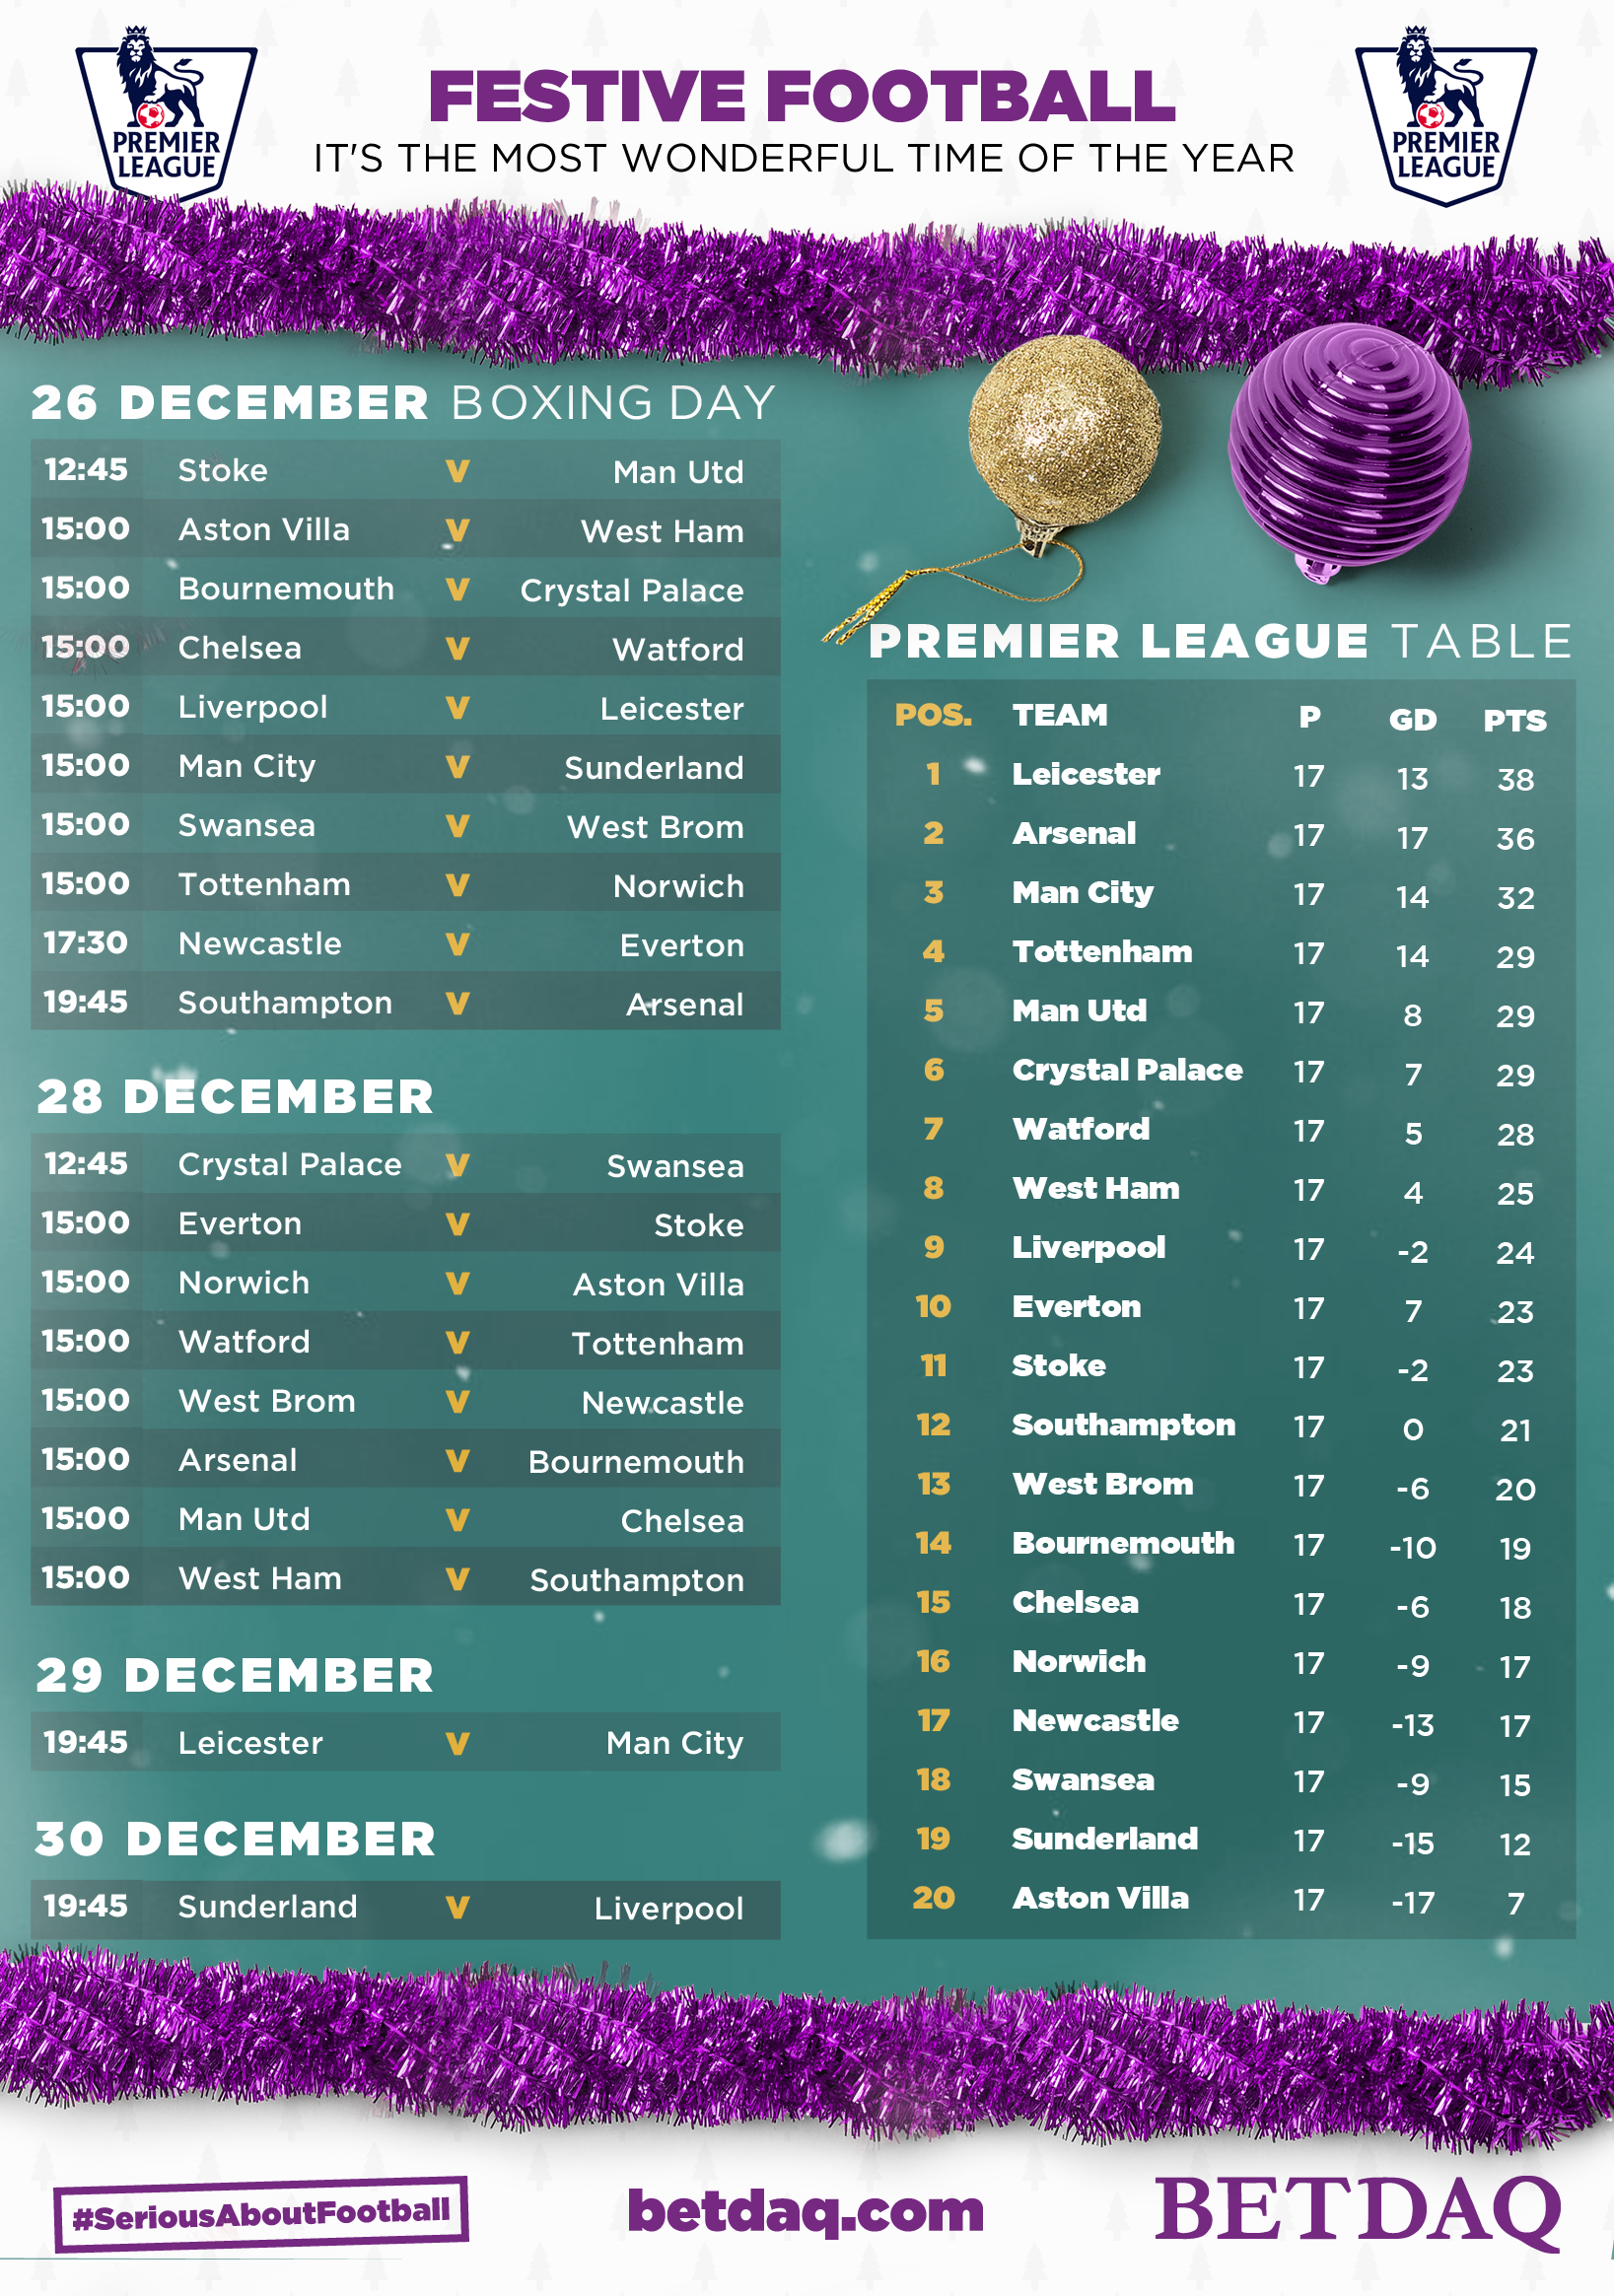 This fixtures graphic was created fro BETDAQ for the Festive Football fixtures in the Premier League for Christmas 2015 - It certainly is the most wonderful time of the year!